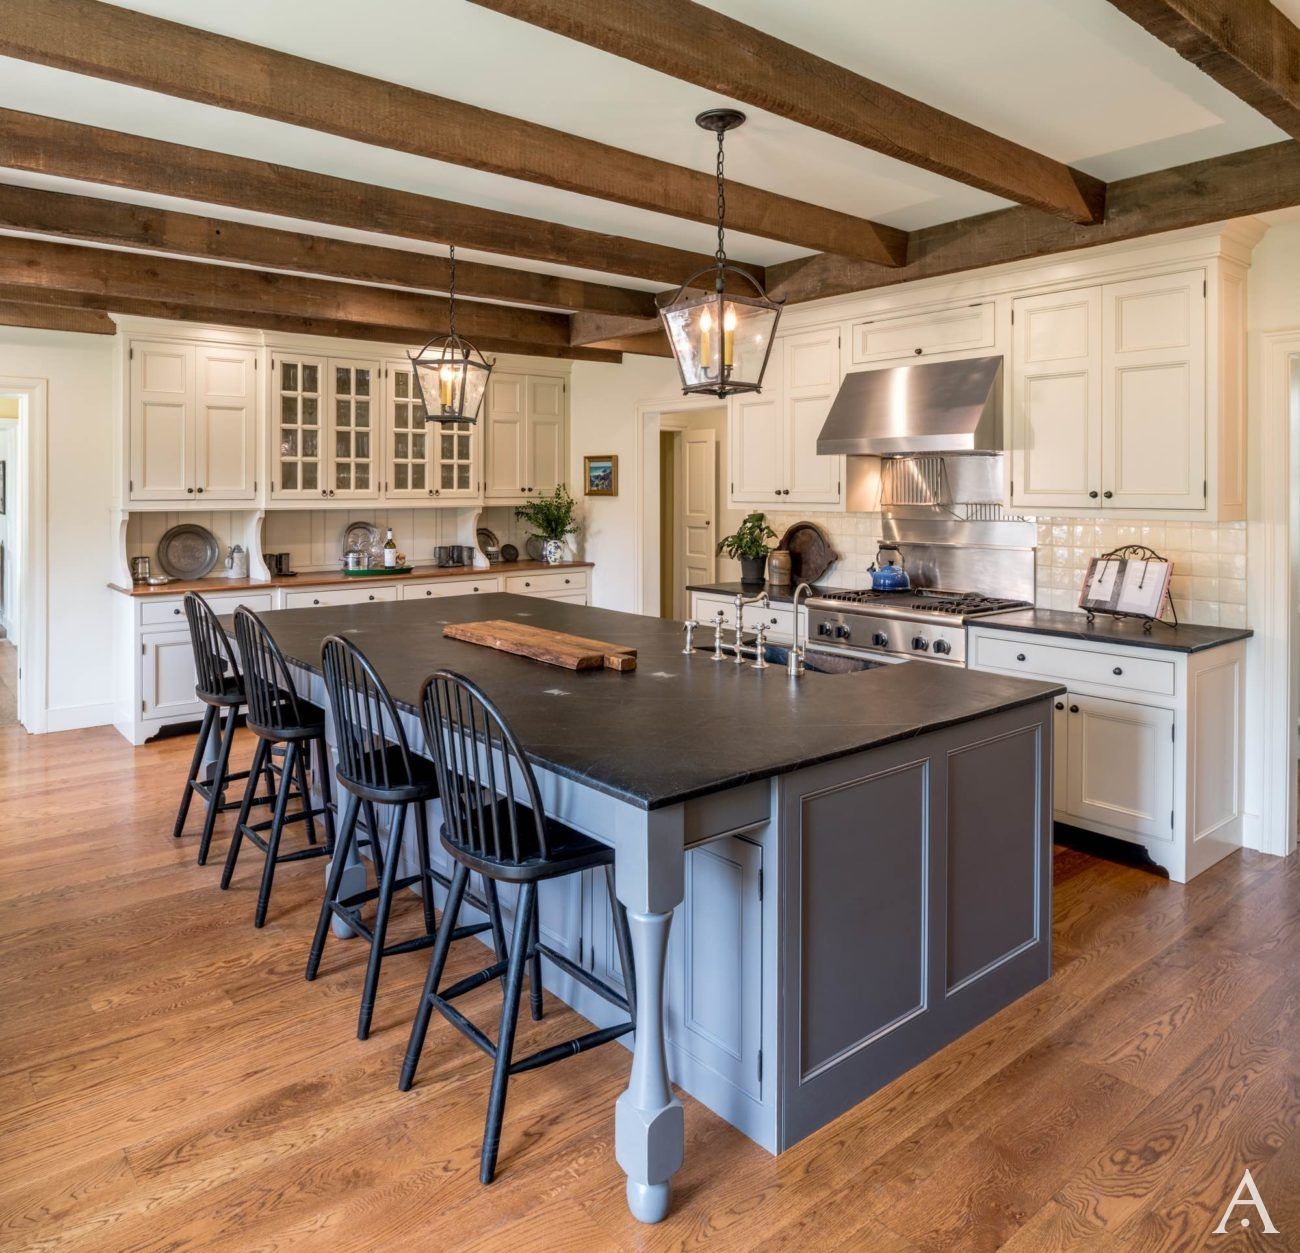 Period Kitchens Designs Renovation: Counter For Wet Bar Addition & Renovation To John Bartram